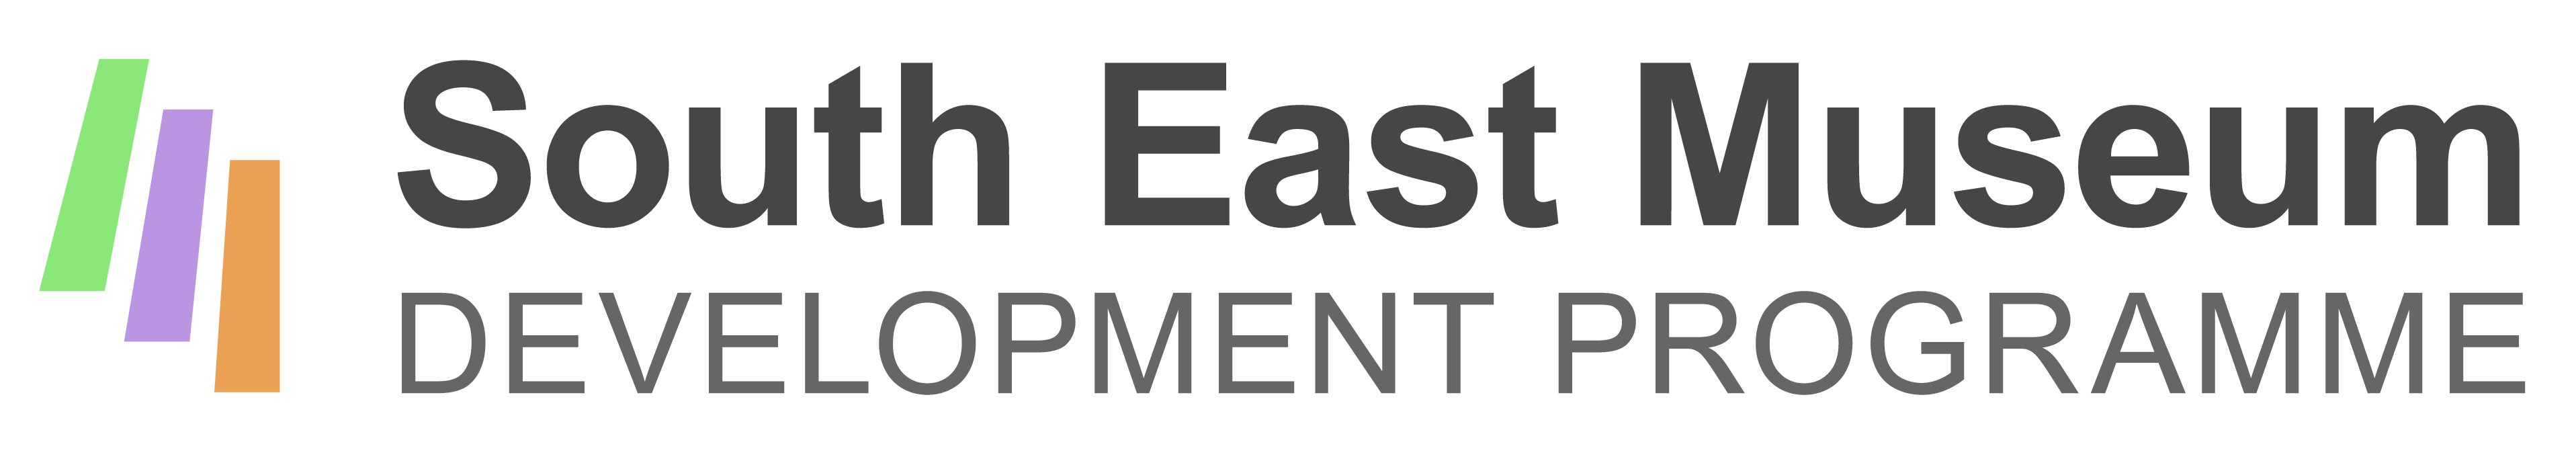 South East Museum Development Programme